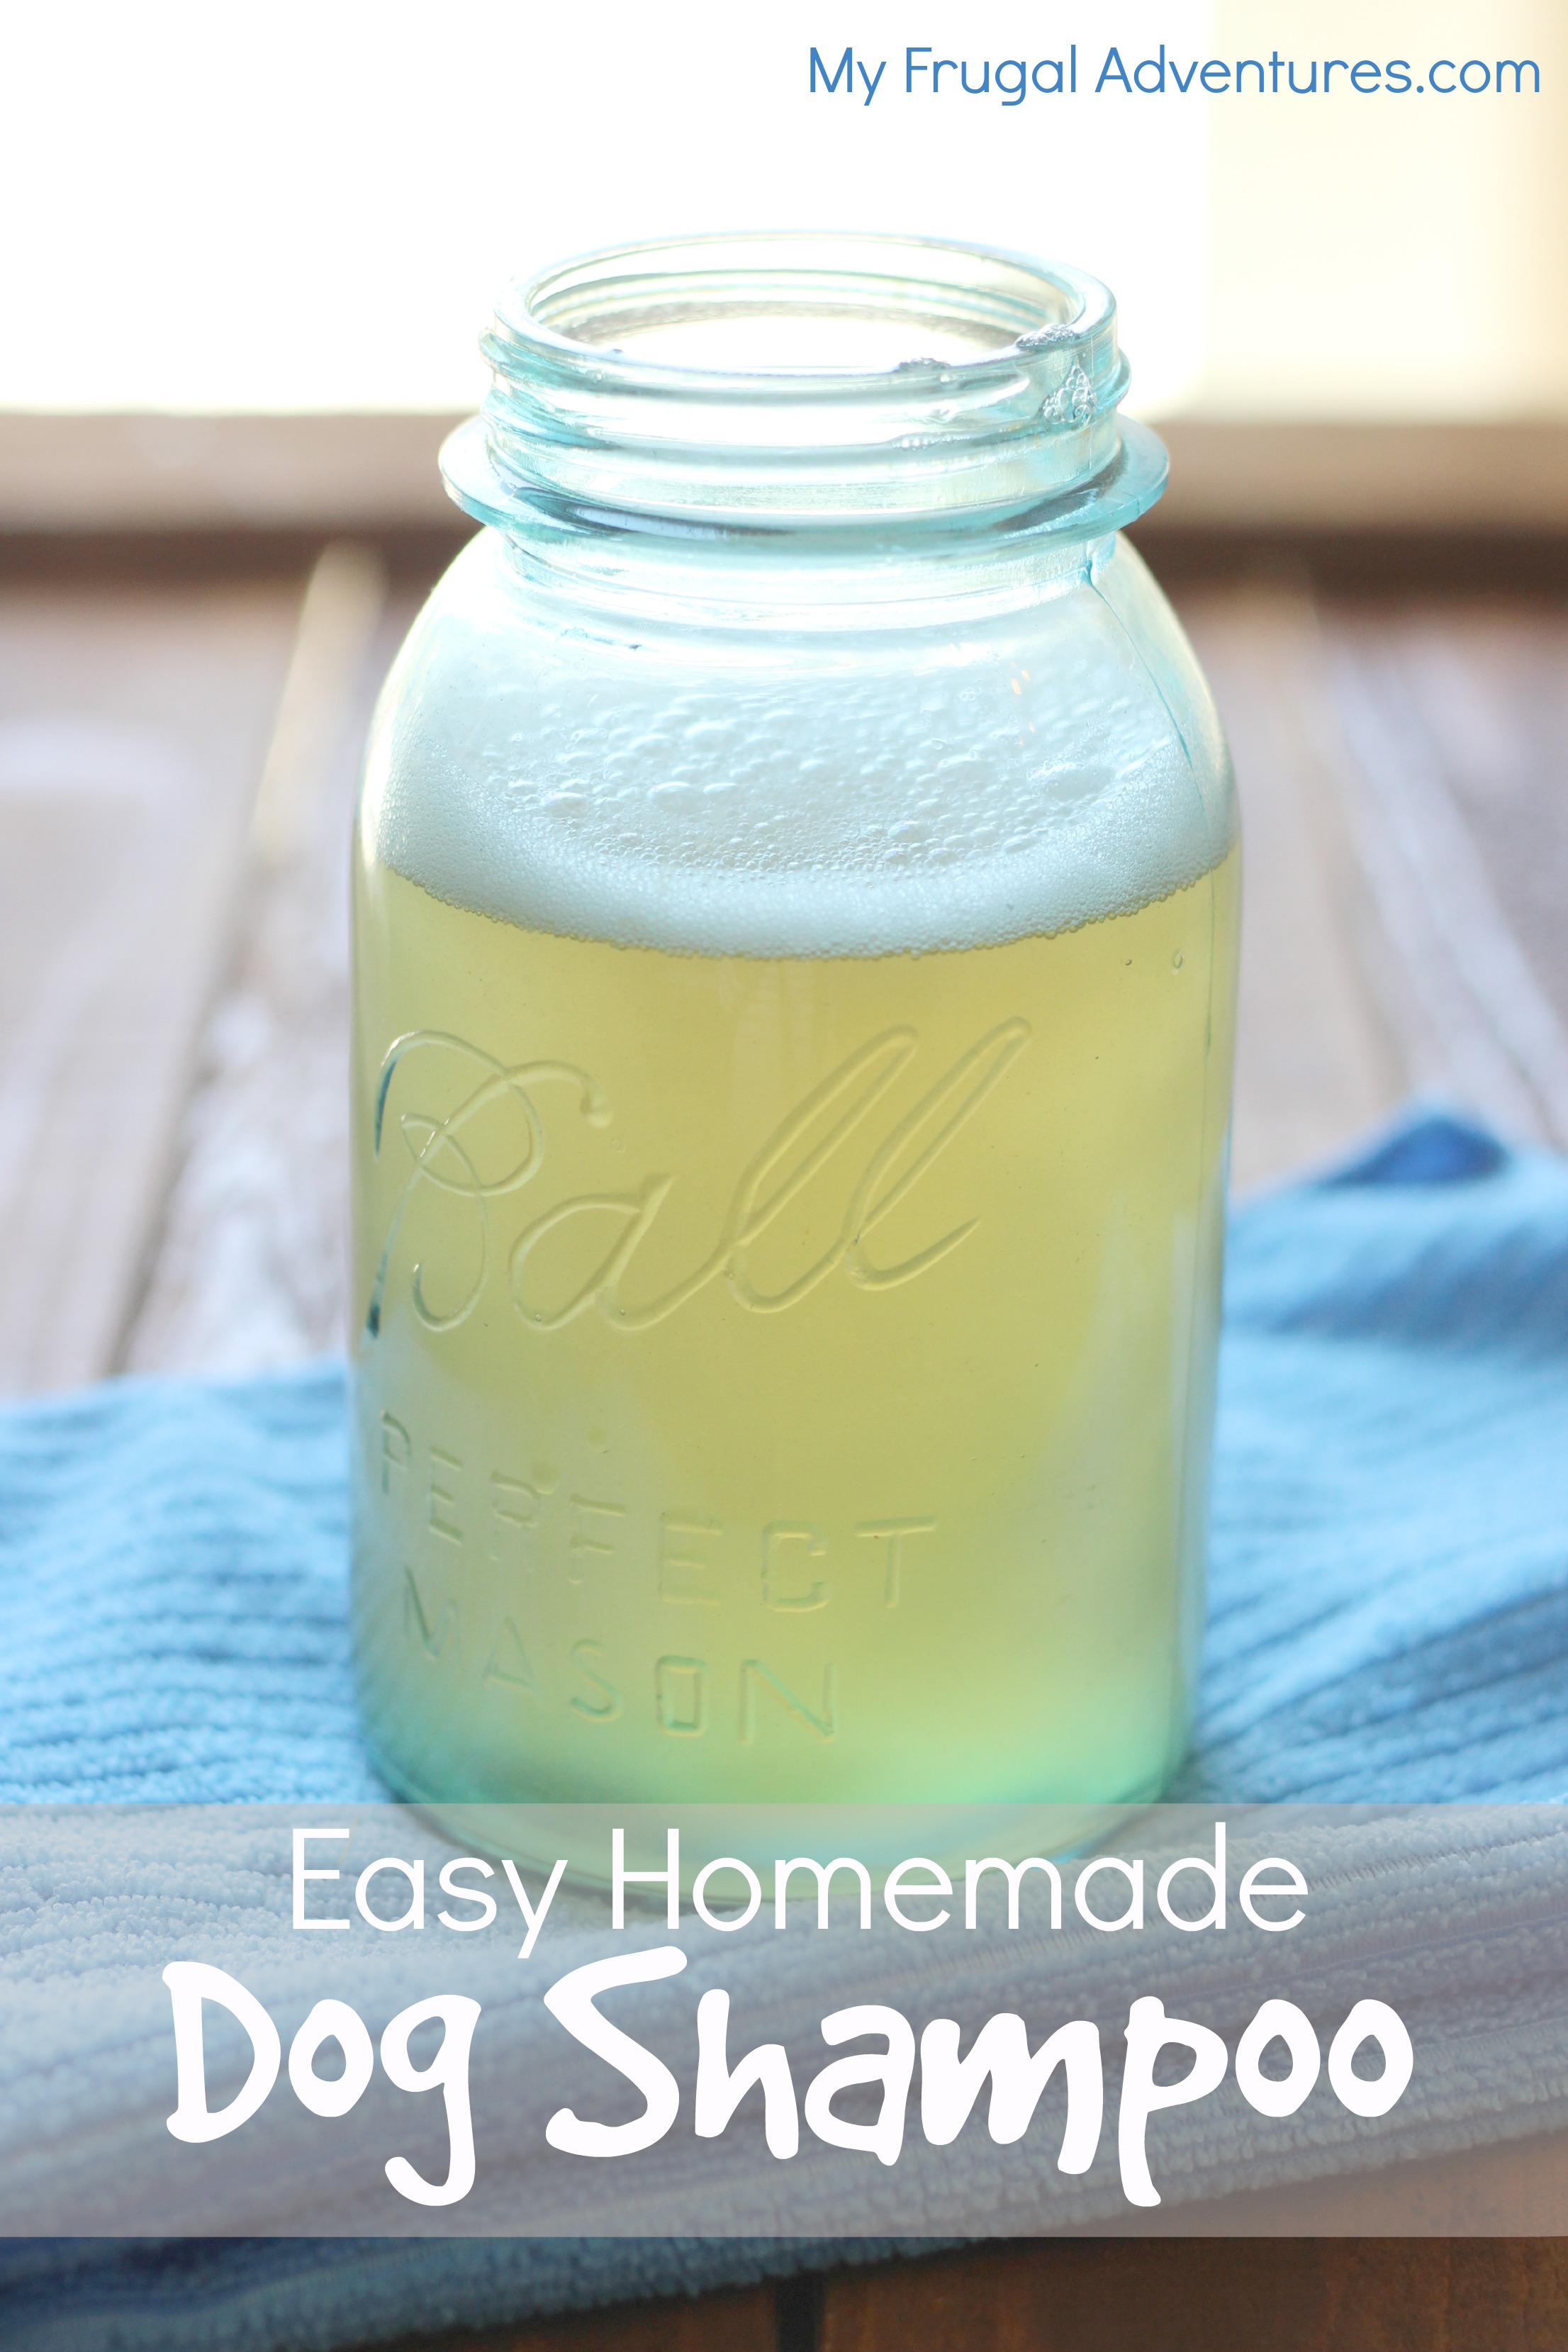 Homemade dog shampoo recipe my frugal adventures - How to make shampoo at home naturally easy recipes ...